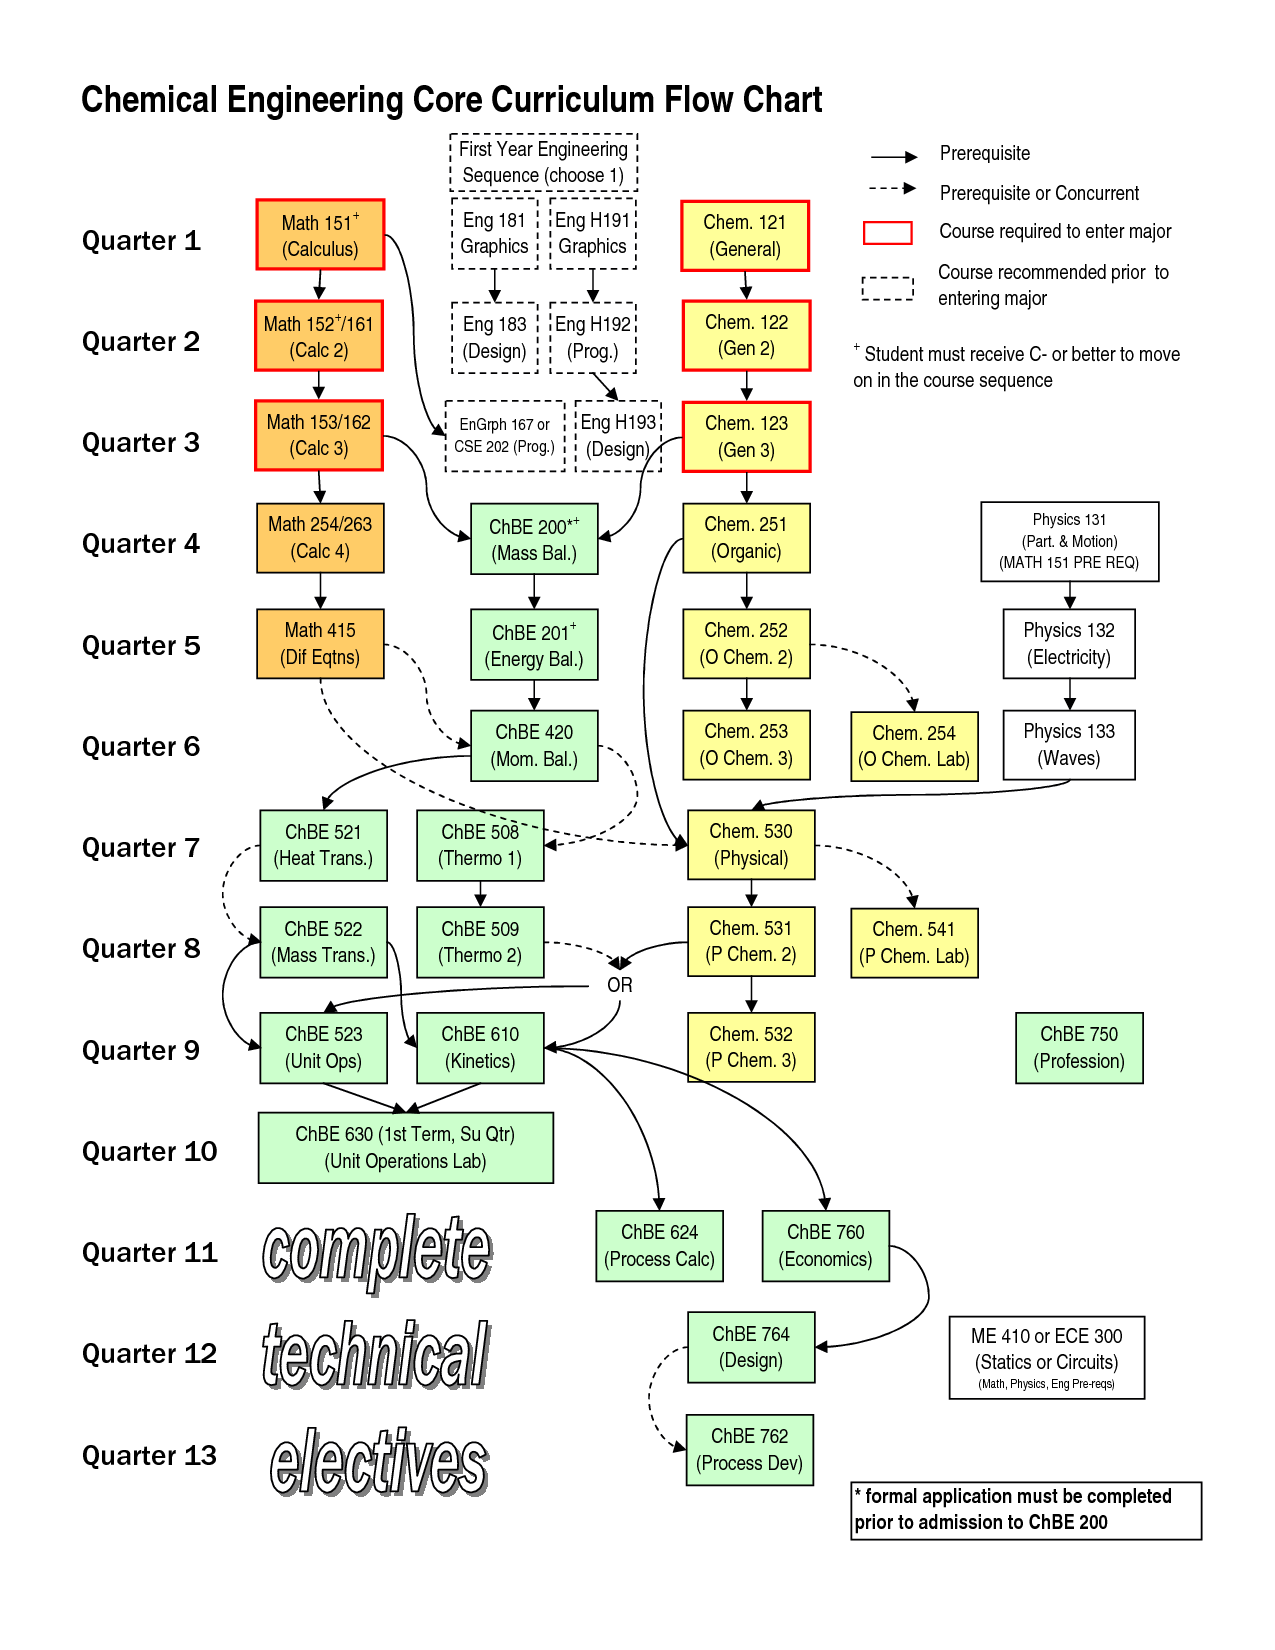 Chemical Engineering Core Curriculum Flow Chart First Year